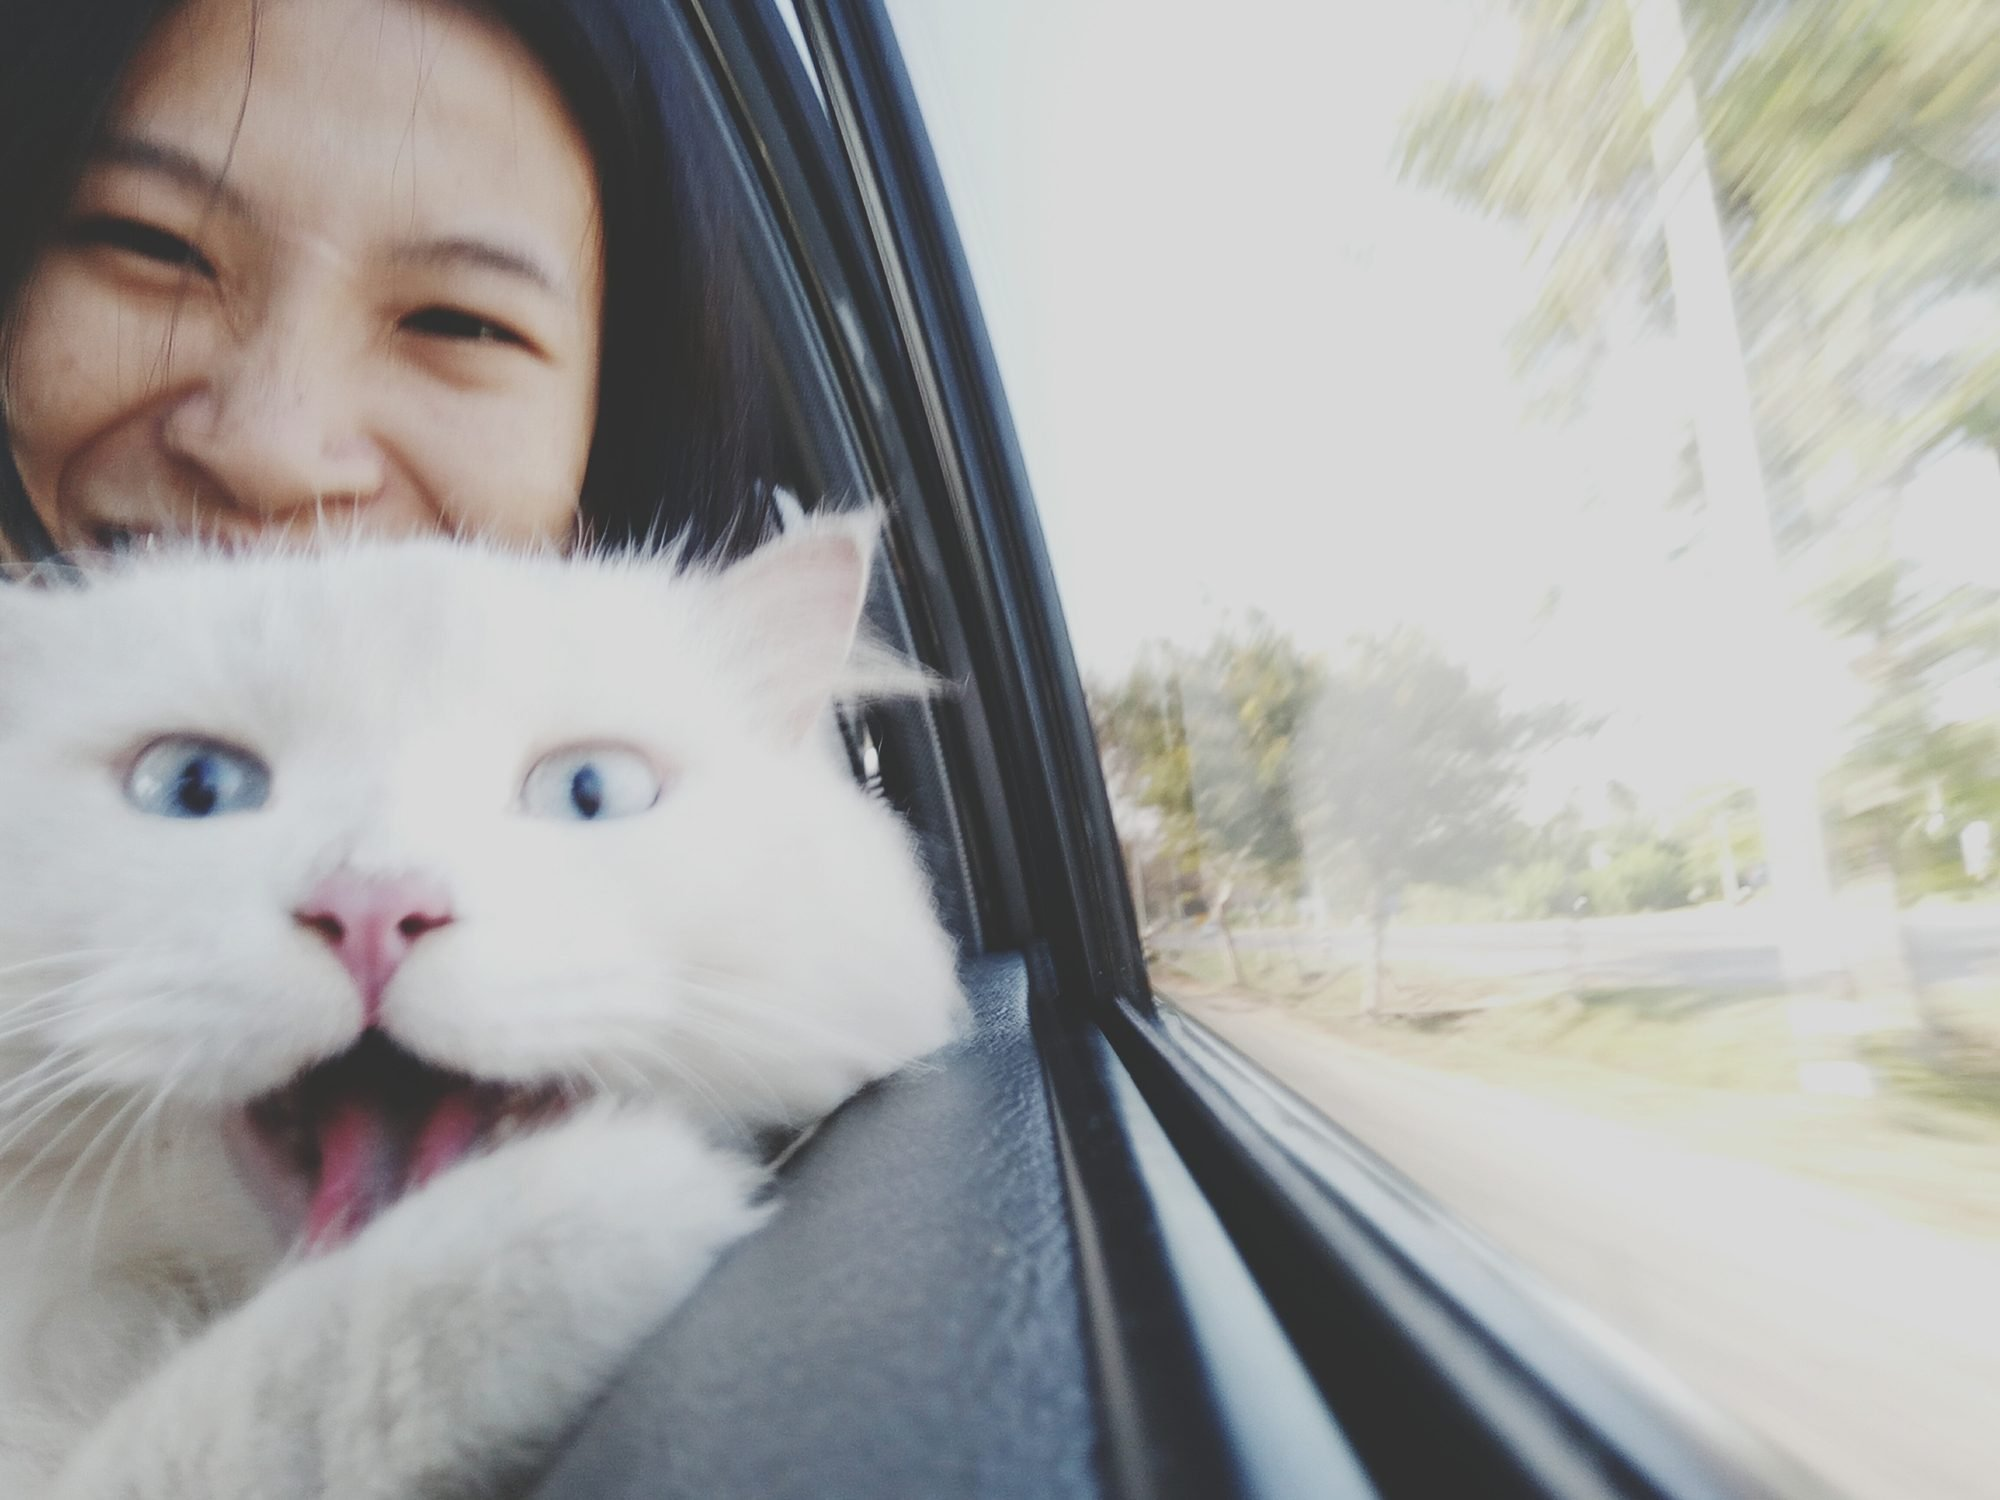 Close-Up Portrait Of Woman And Cat In Car